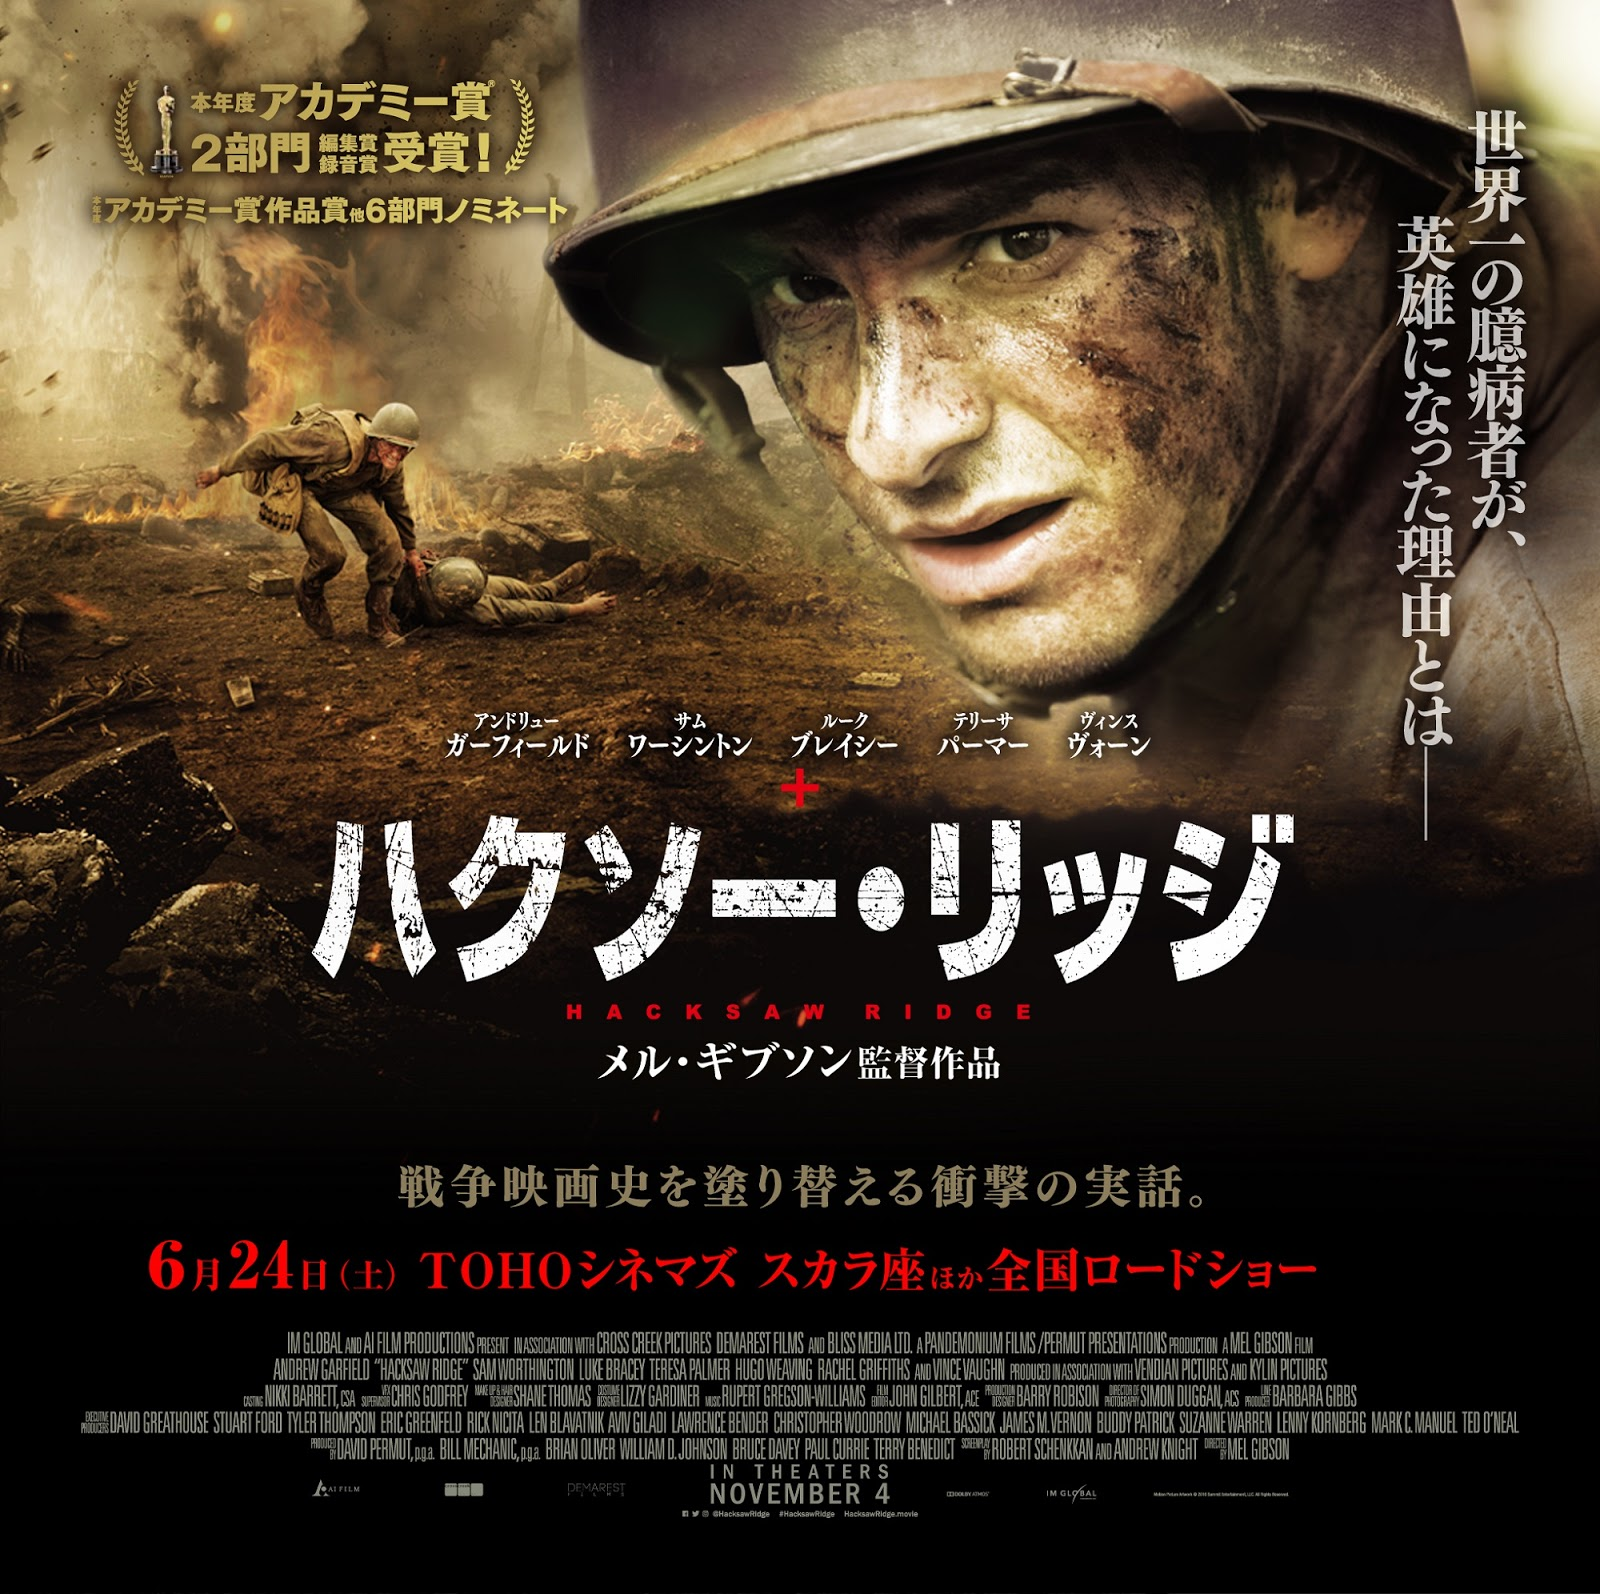 Gen Japan S Staff Blog Hacksaw Ridge Directed By Mel Gibson